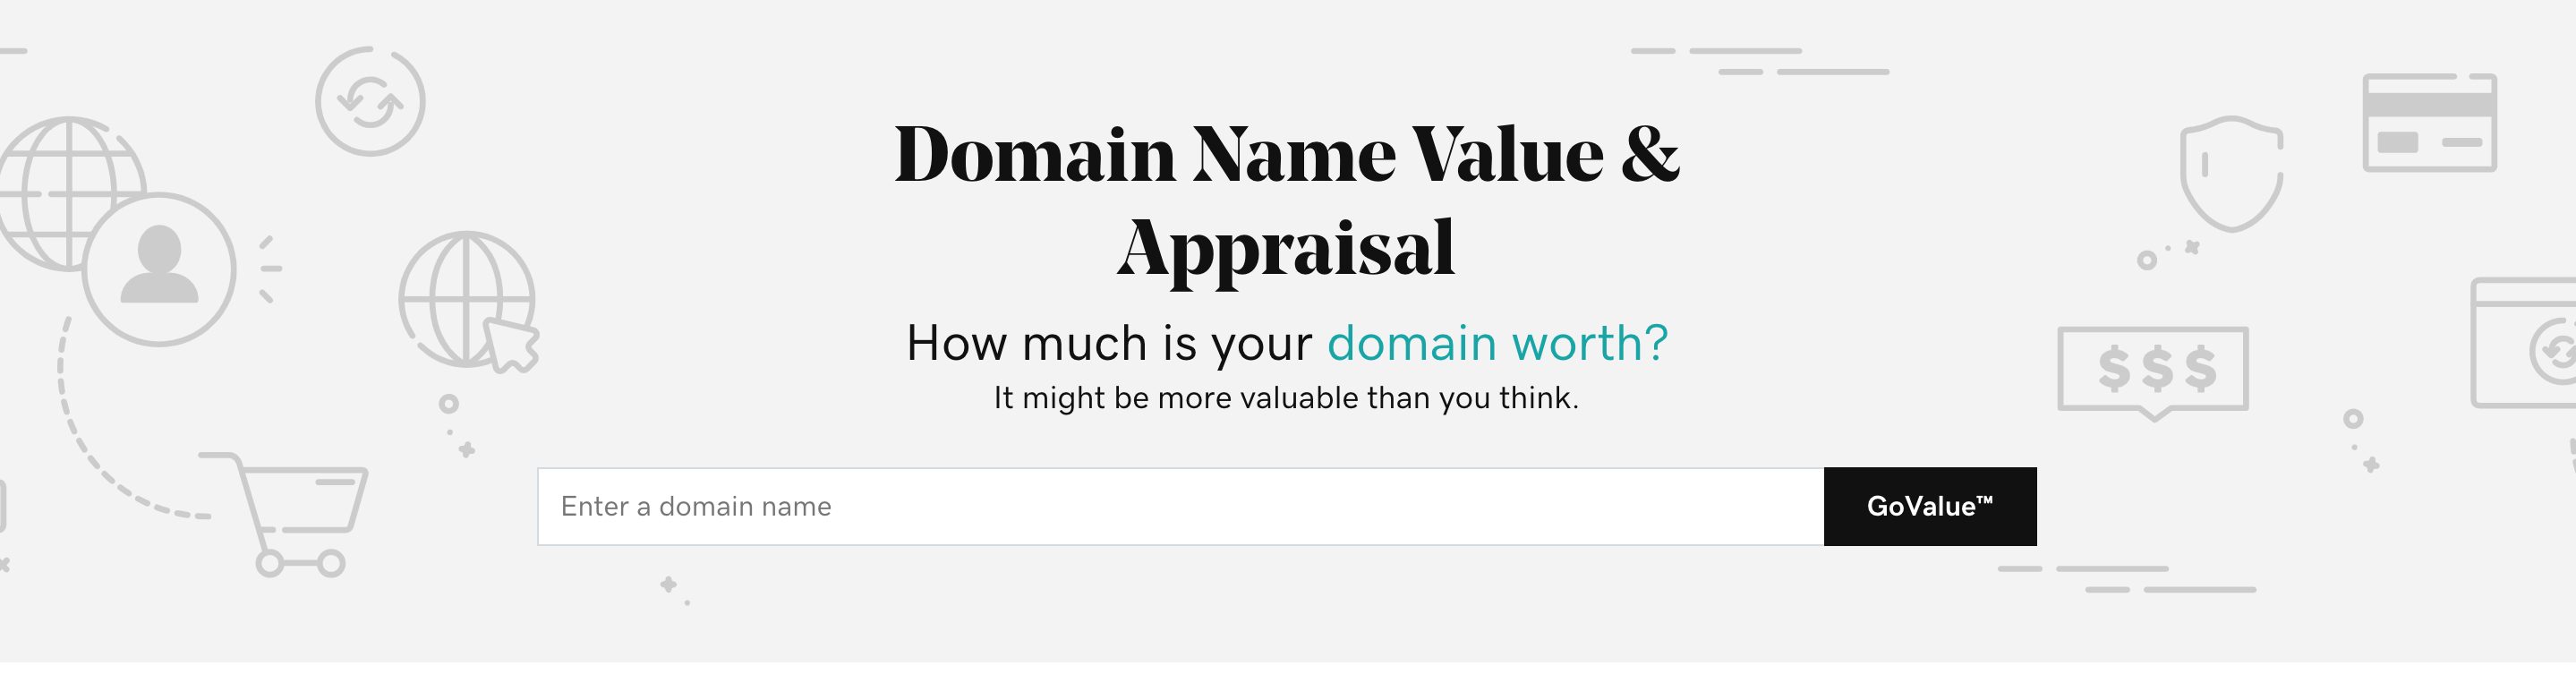 Domain name value tool